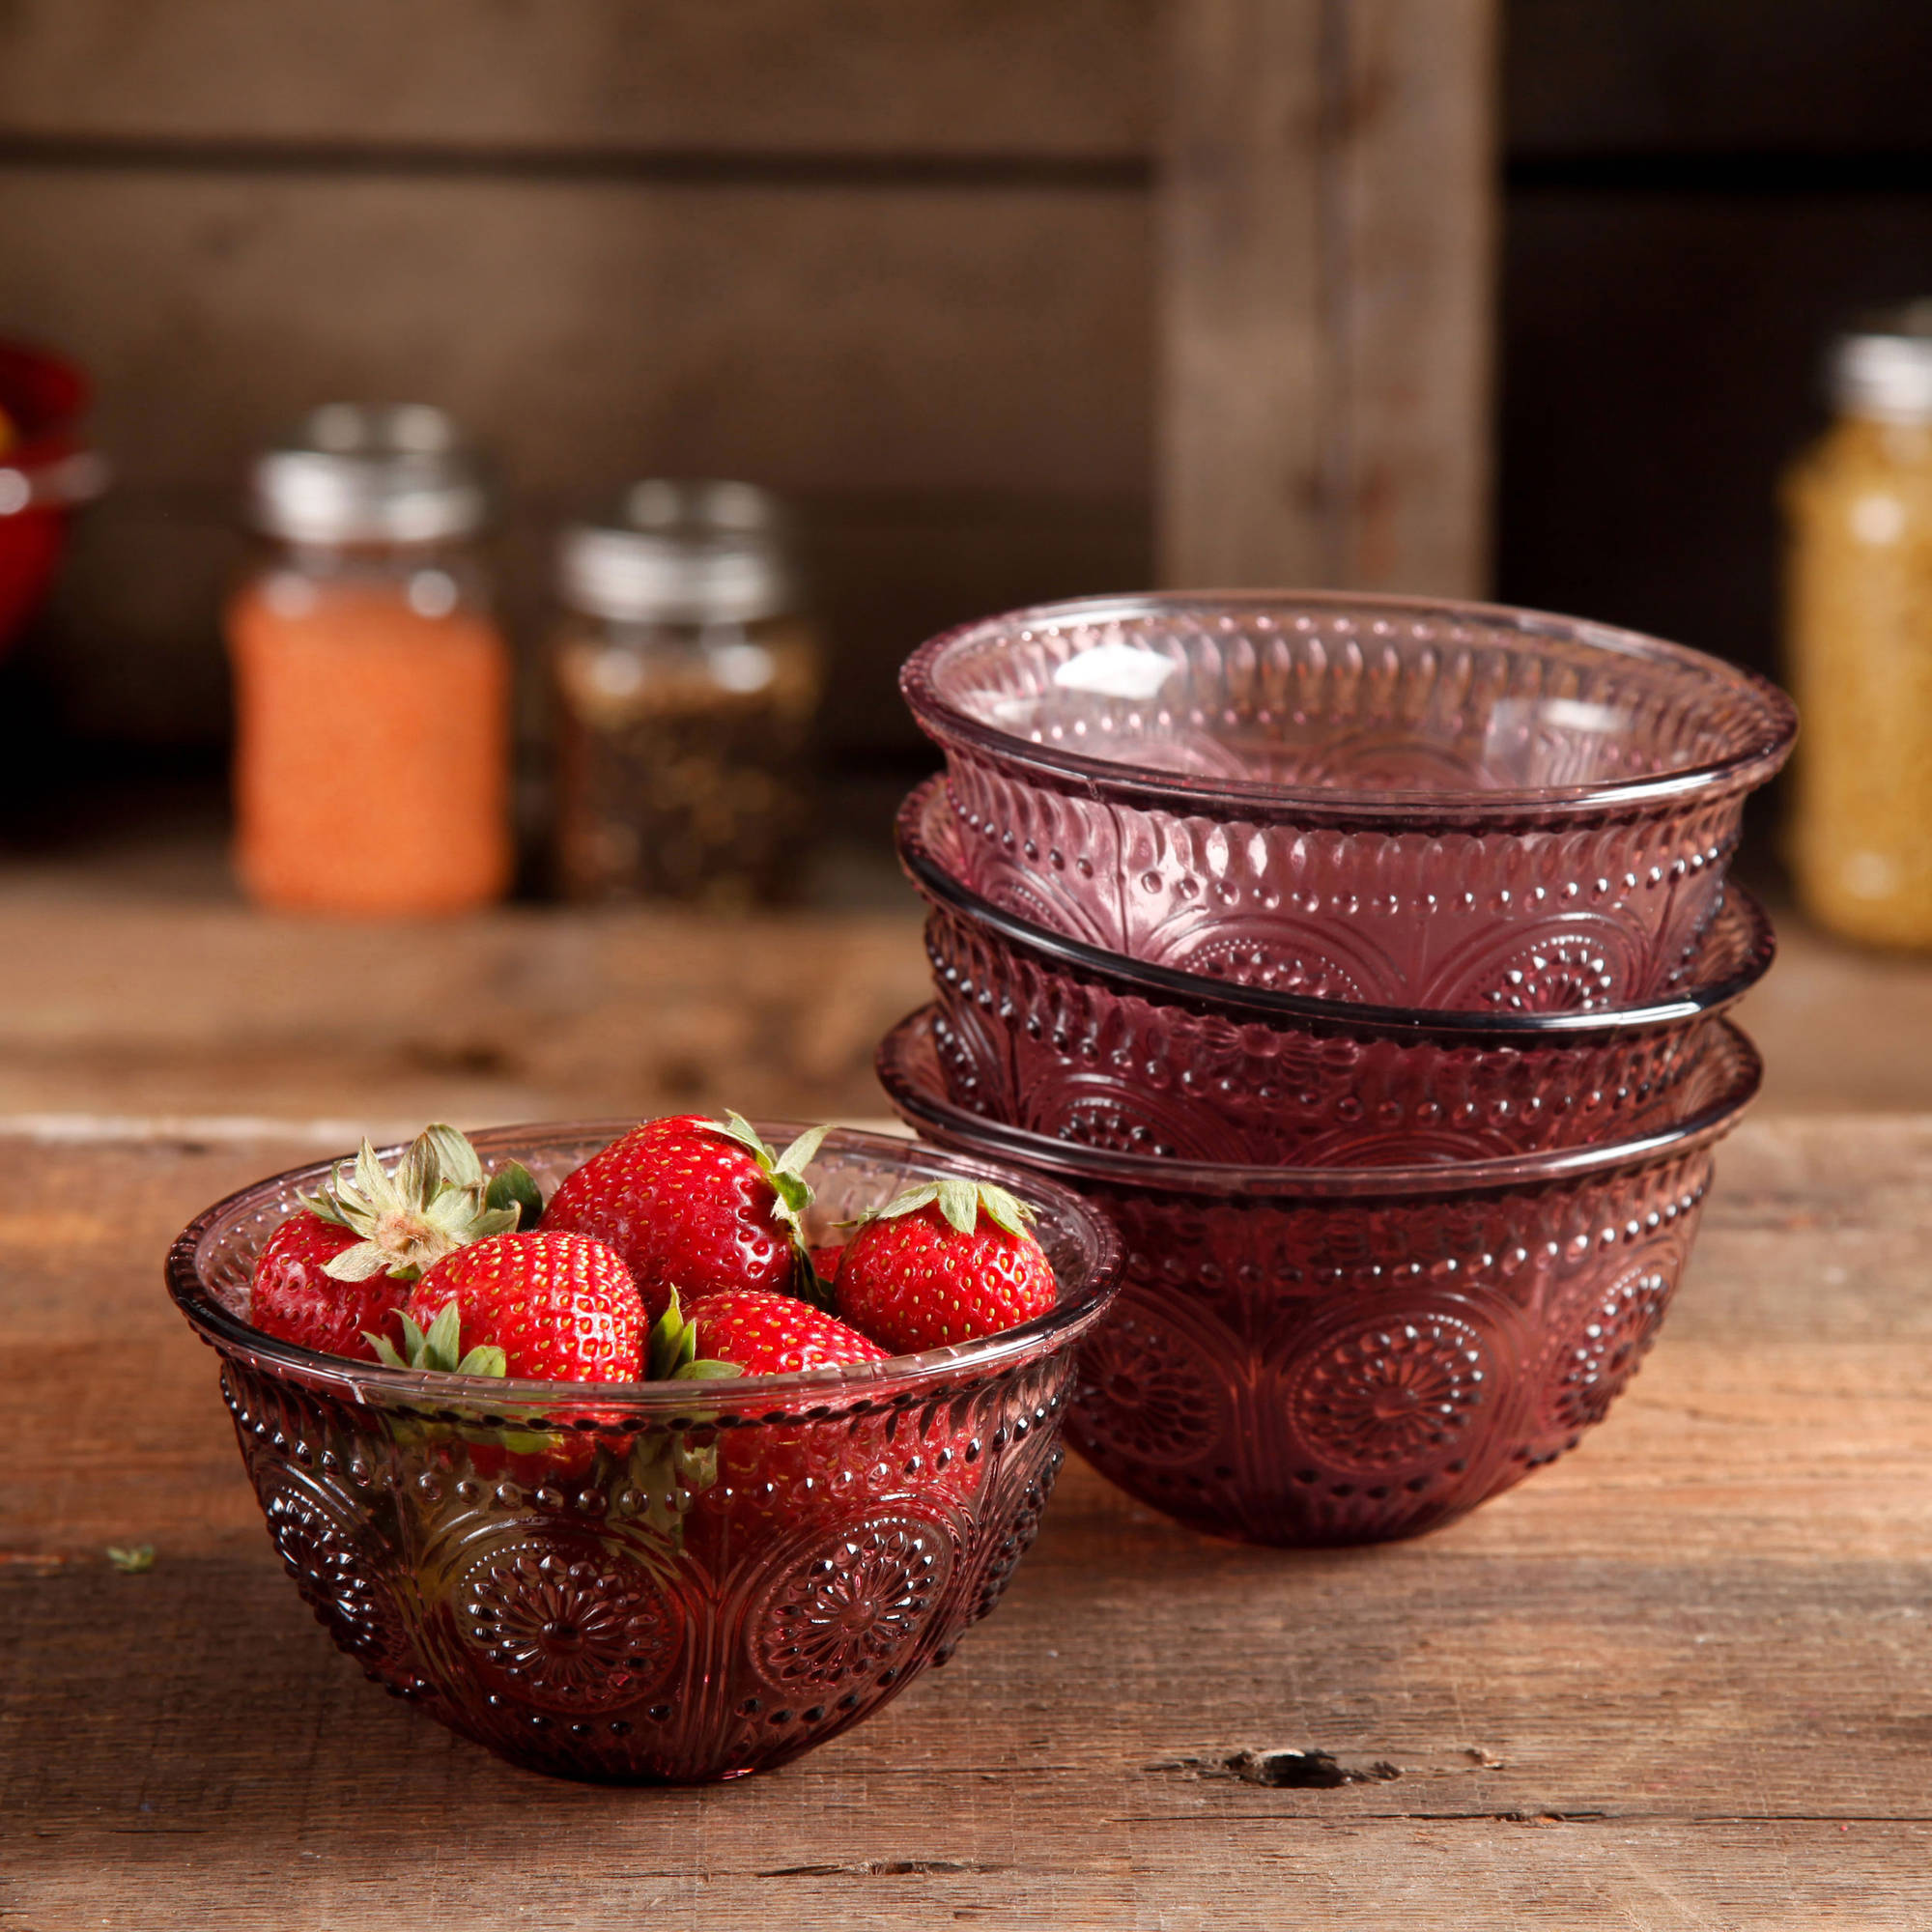 The Pioneer Woman Adeline 13 oz Emboss Glass Bowl, Set of 4